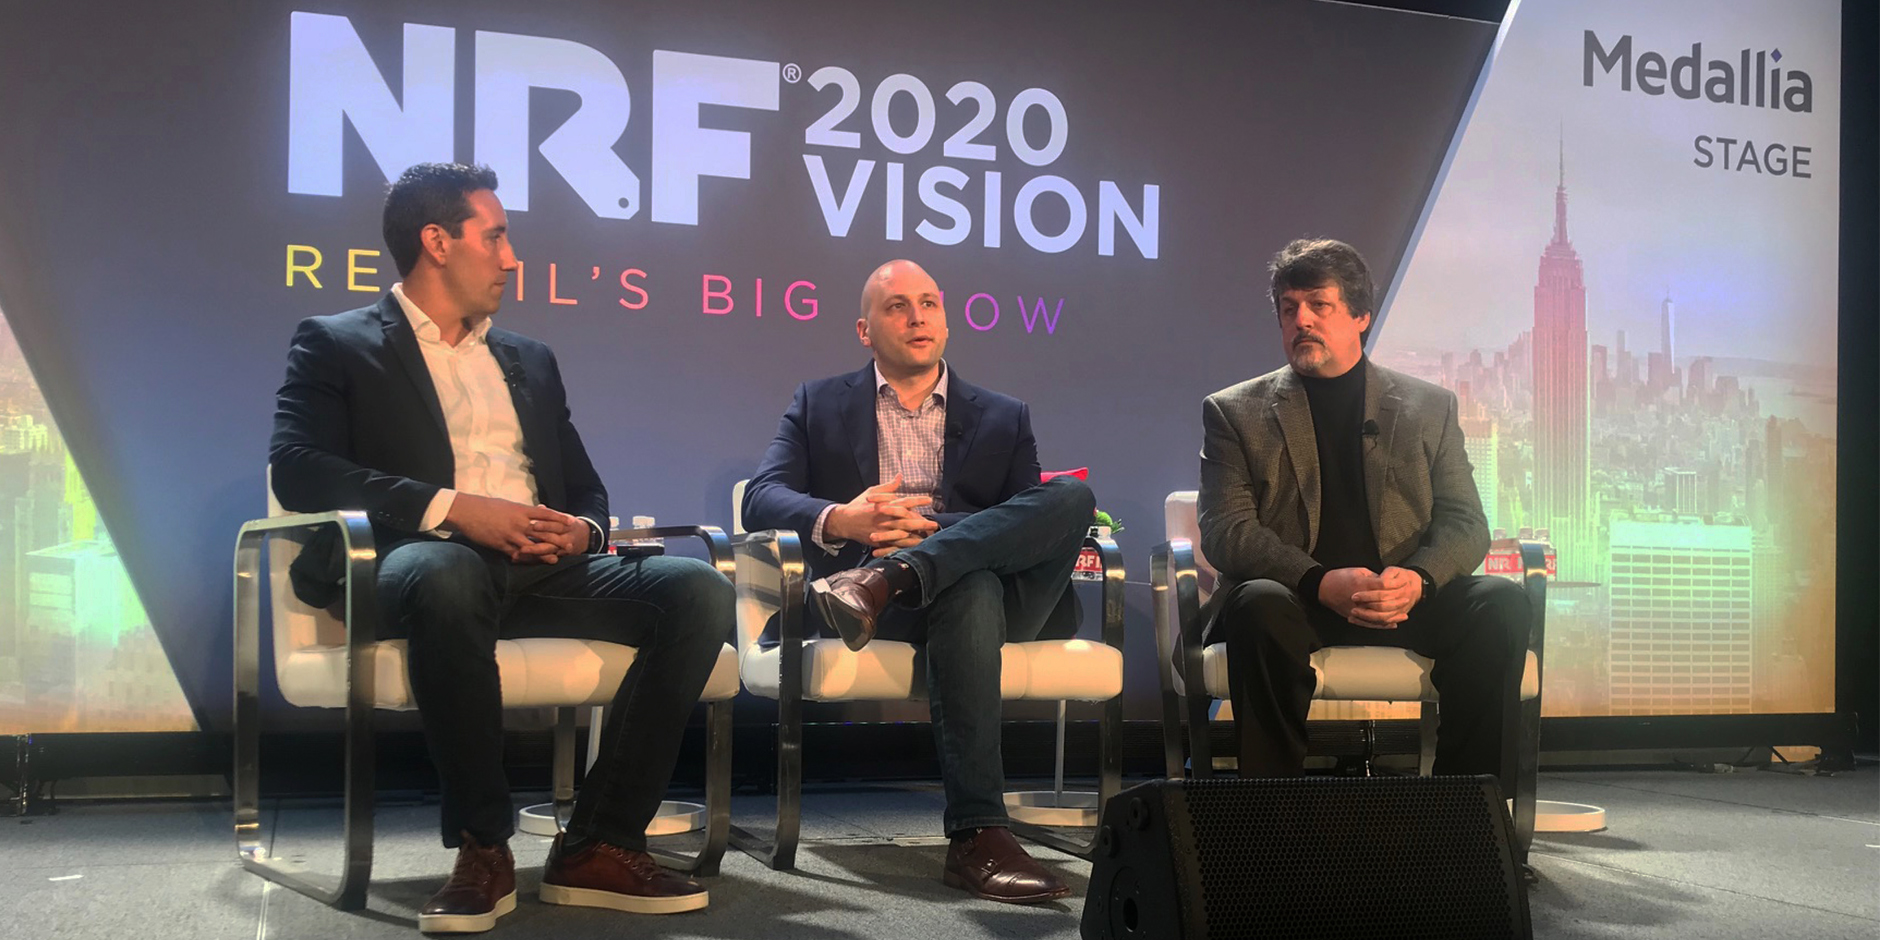 Three men sit in chairs onstage in front of a big screen showing the NRF Big Show logo